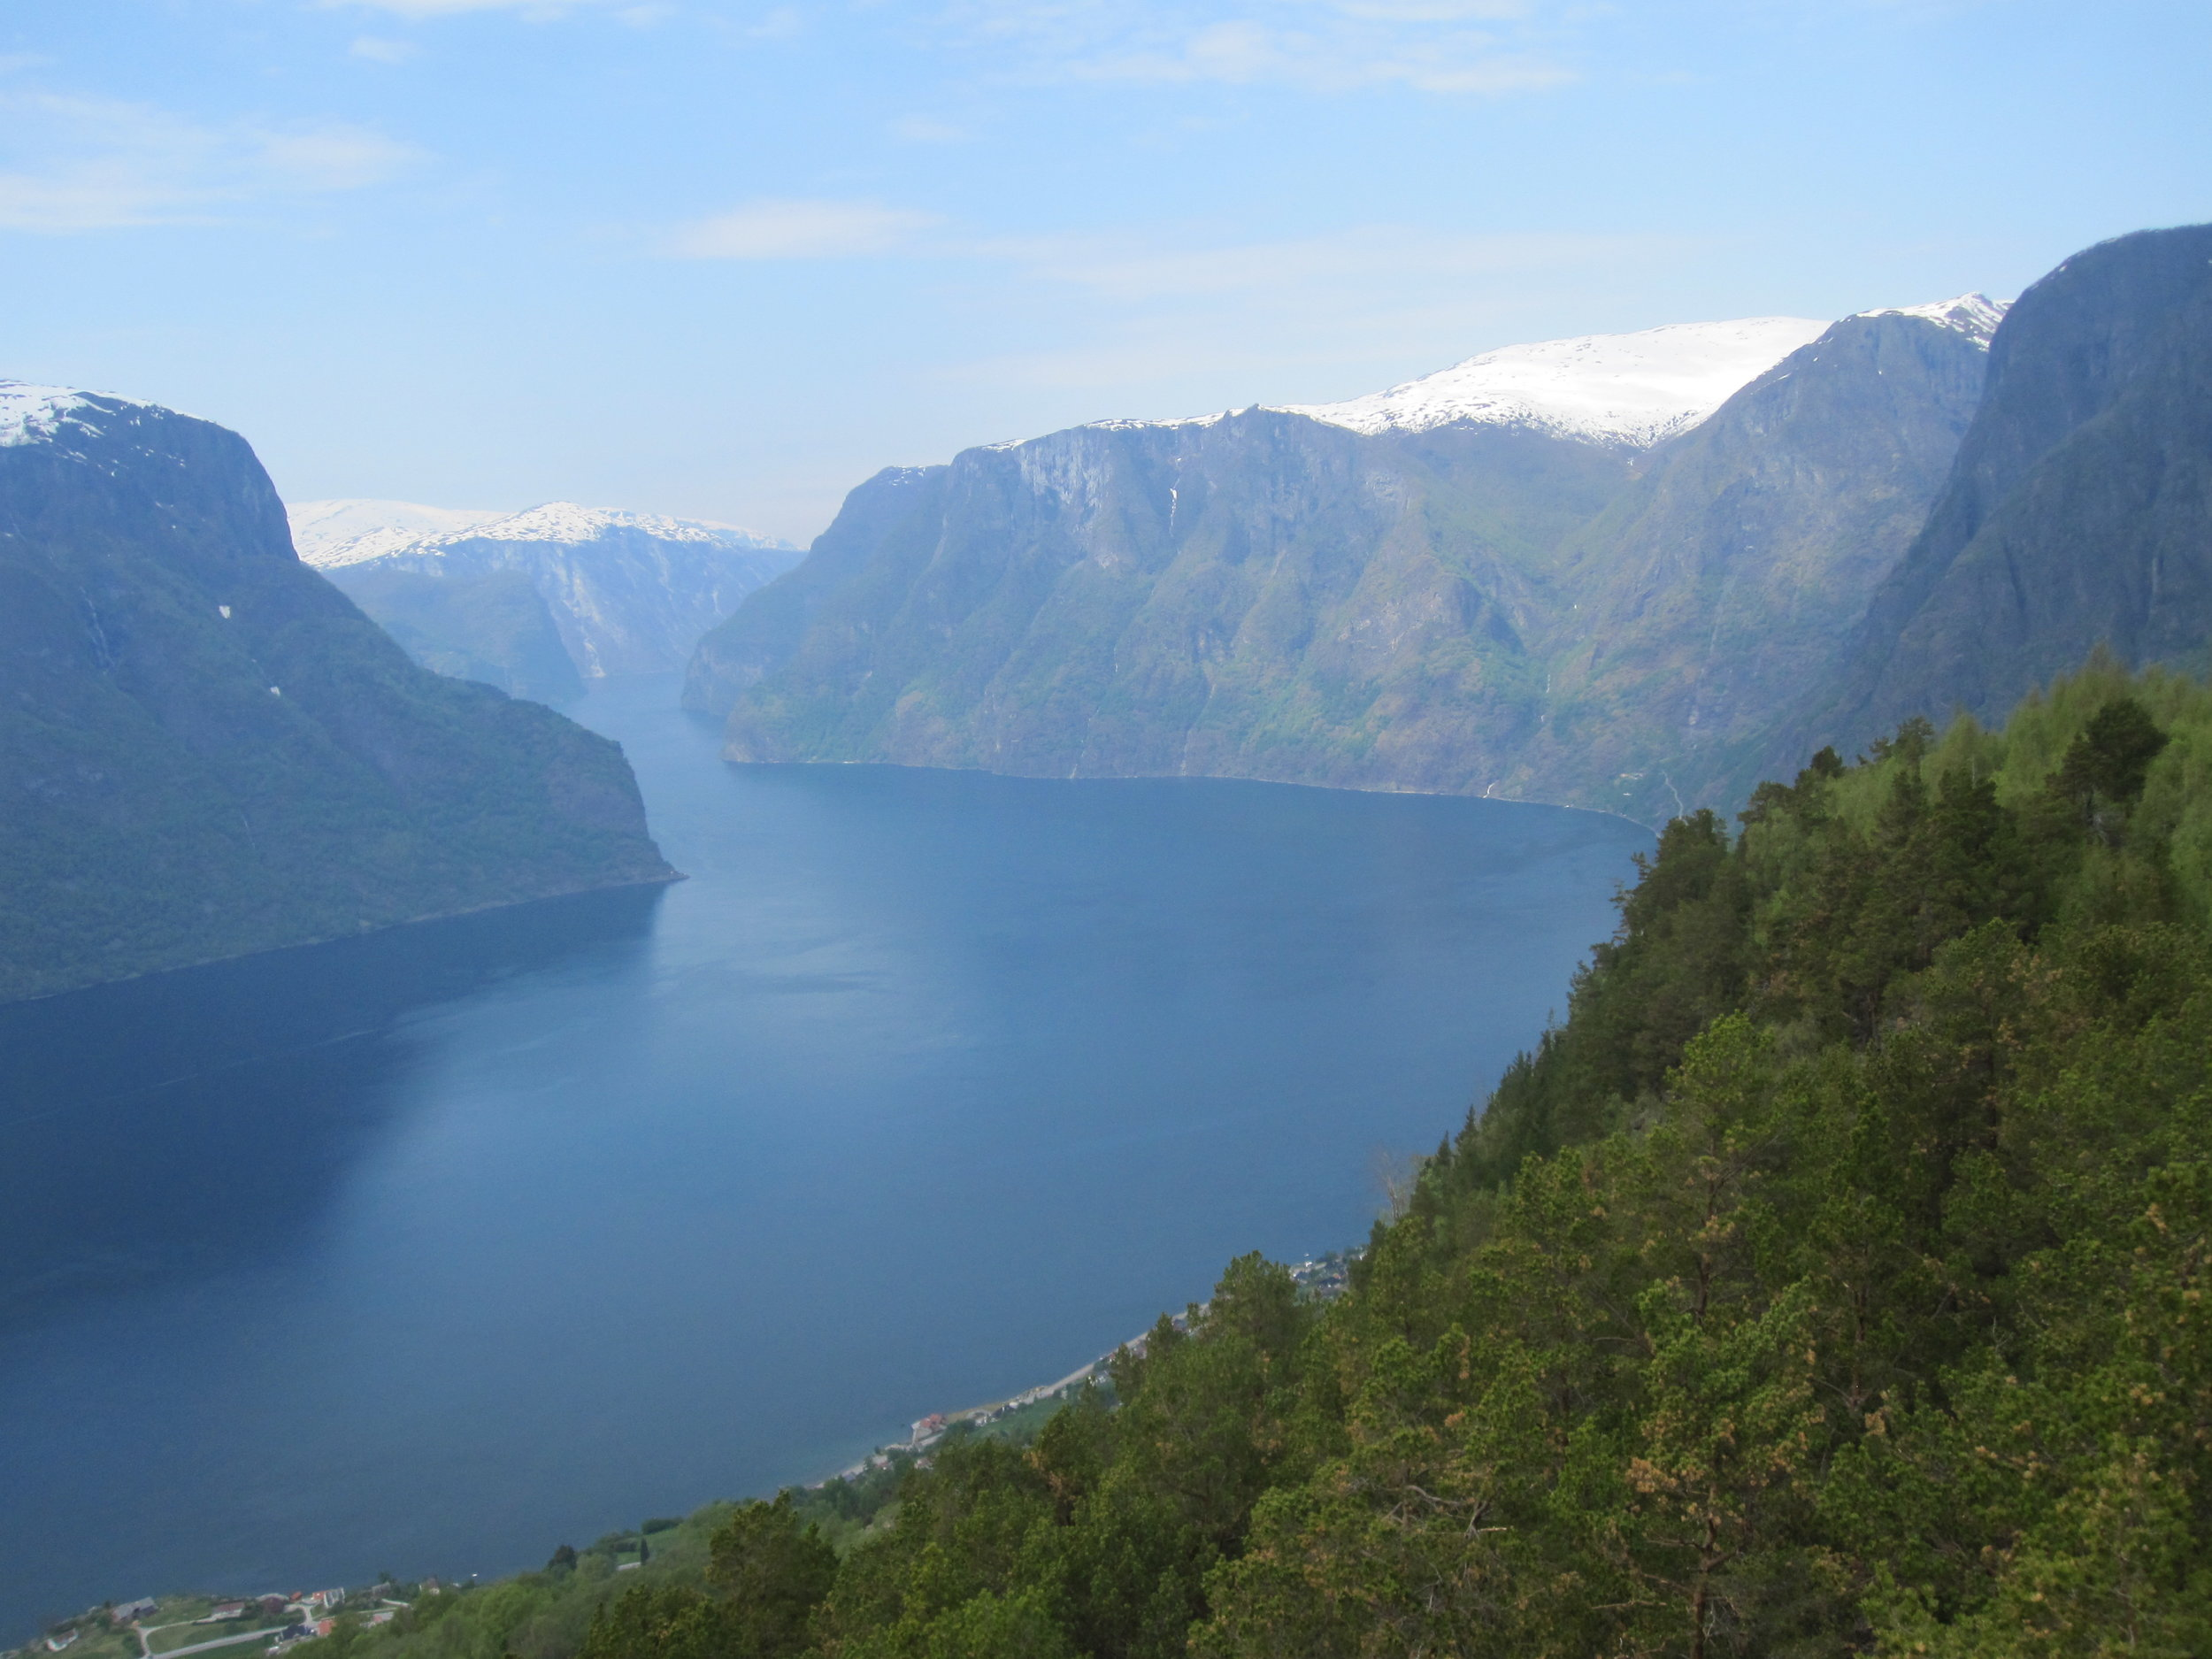 Aurlandsfjord from a vantage point